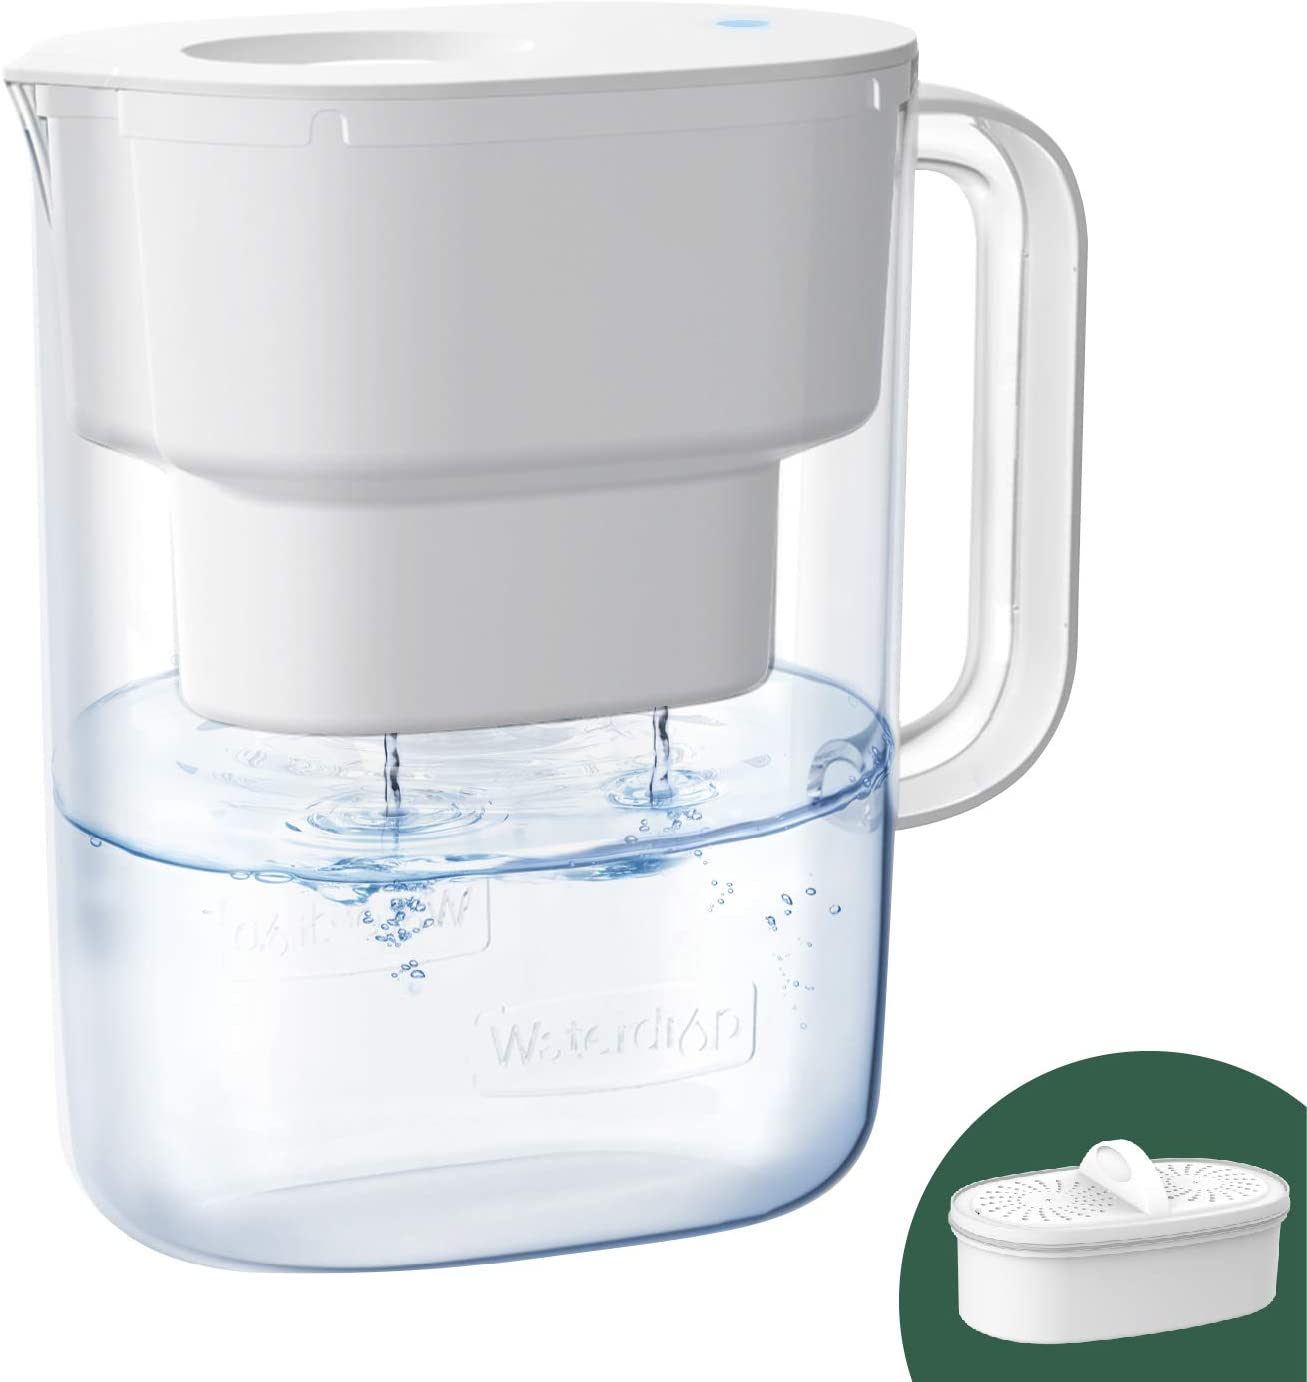 Waterdrop 10-Cup Water Filter Pitcher with 1 Filter, Long-Lasting (200 gallons), 5X Times Lifetime Filtration Jug, Reduces Lead, Fluoride, Chlorine and More, BPA Free, White, Model: WD-PT-07W